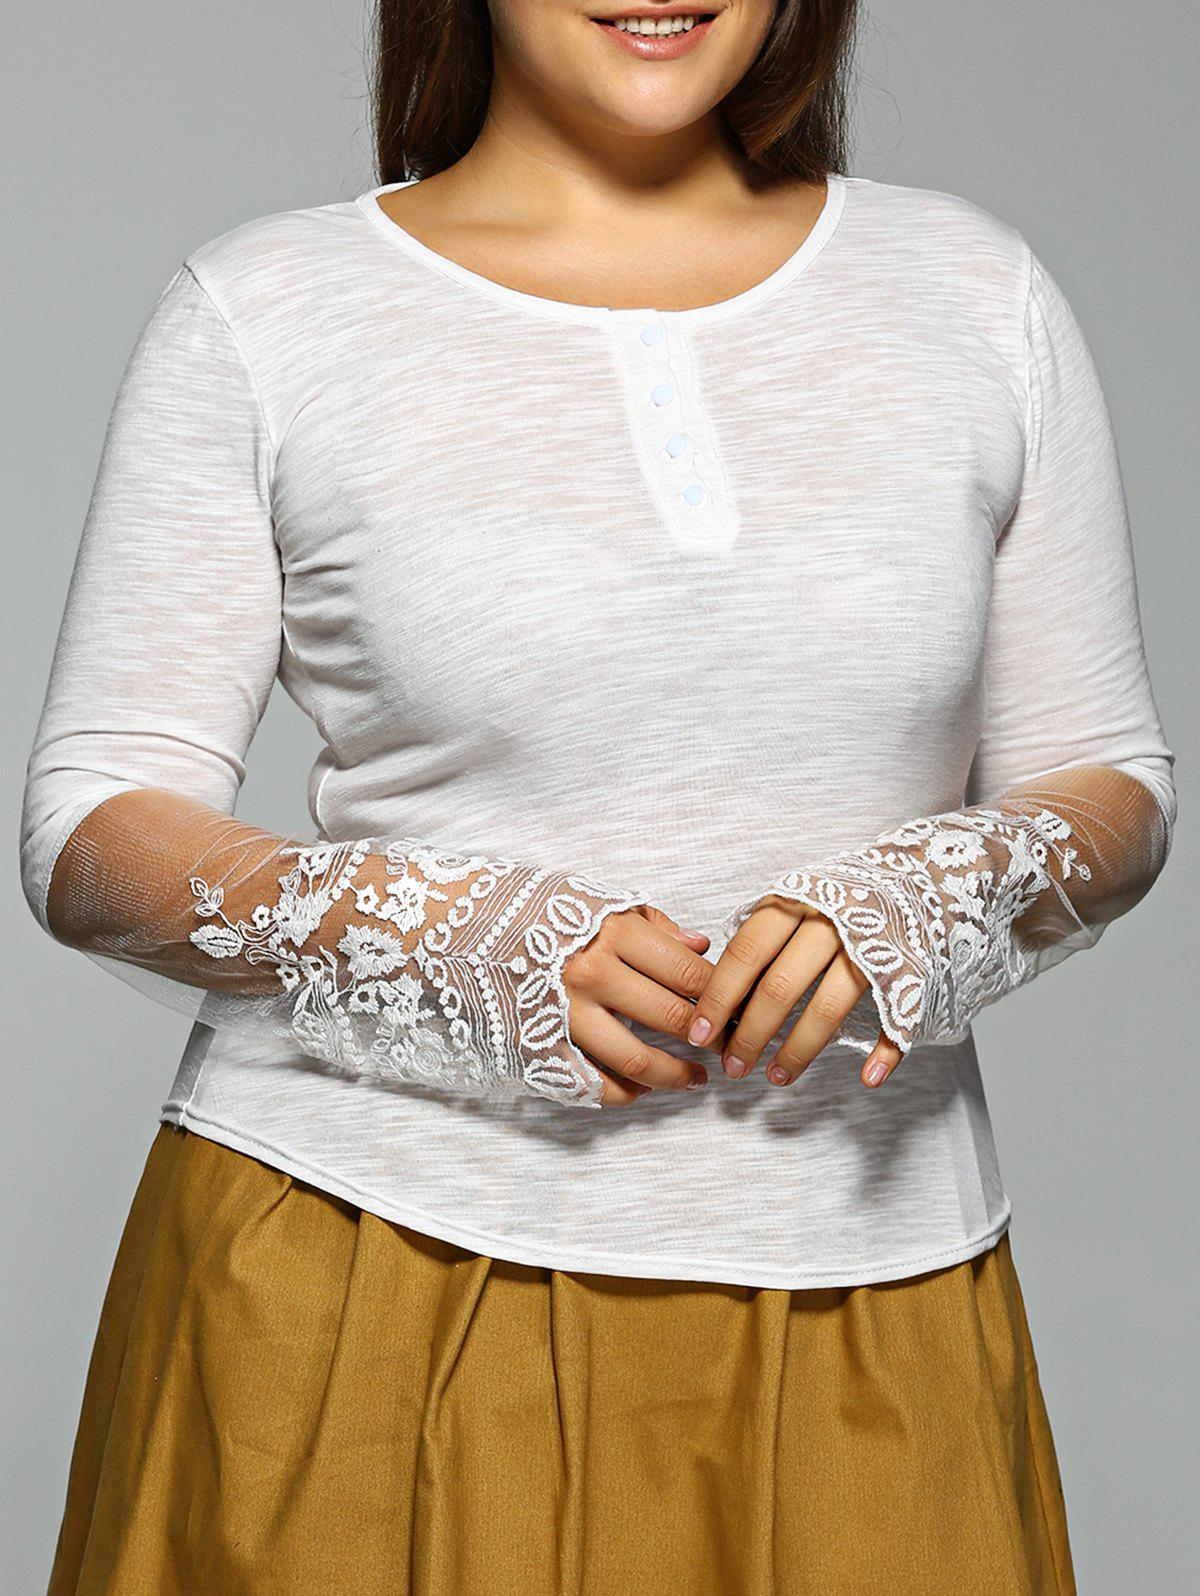 Plus Size Long Sleeve Lace Inset T-Shirt sanctuary new tan long sleeve lace inset tee xs $49 dbfl